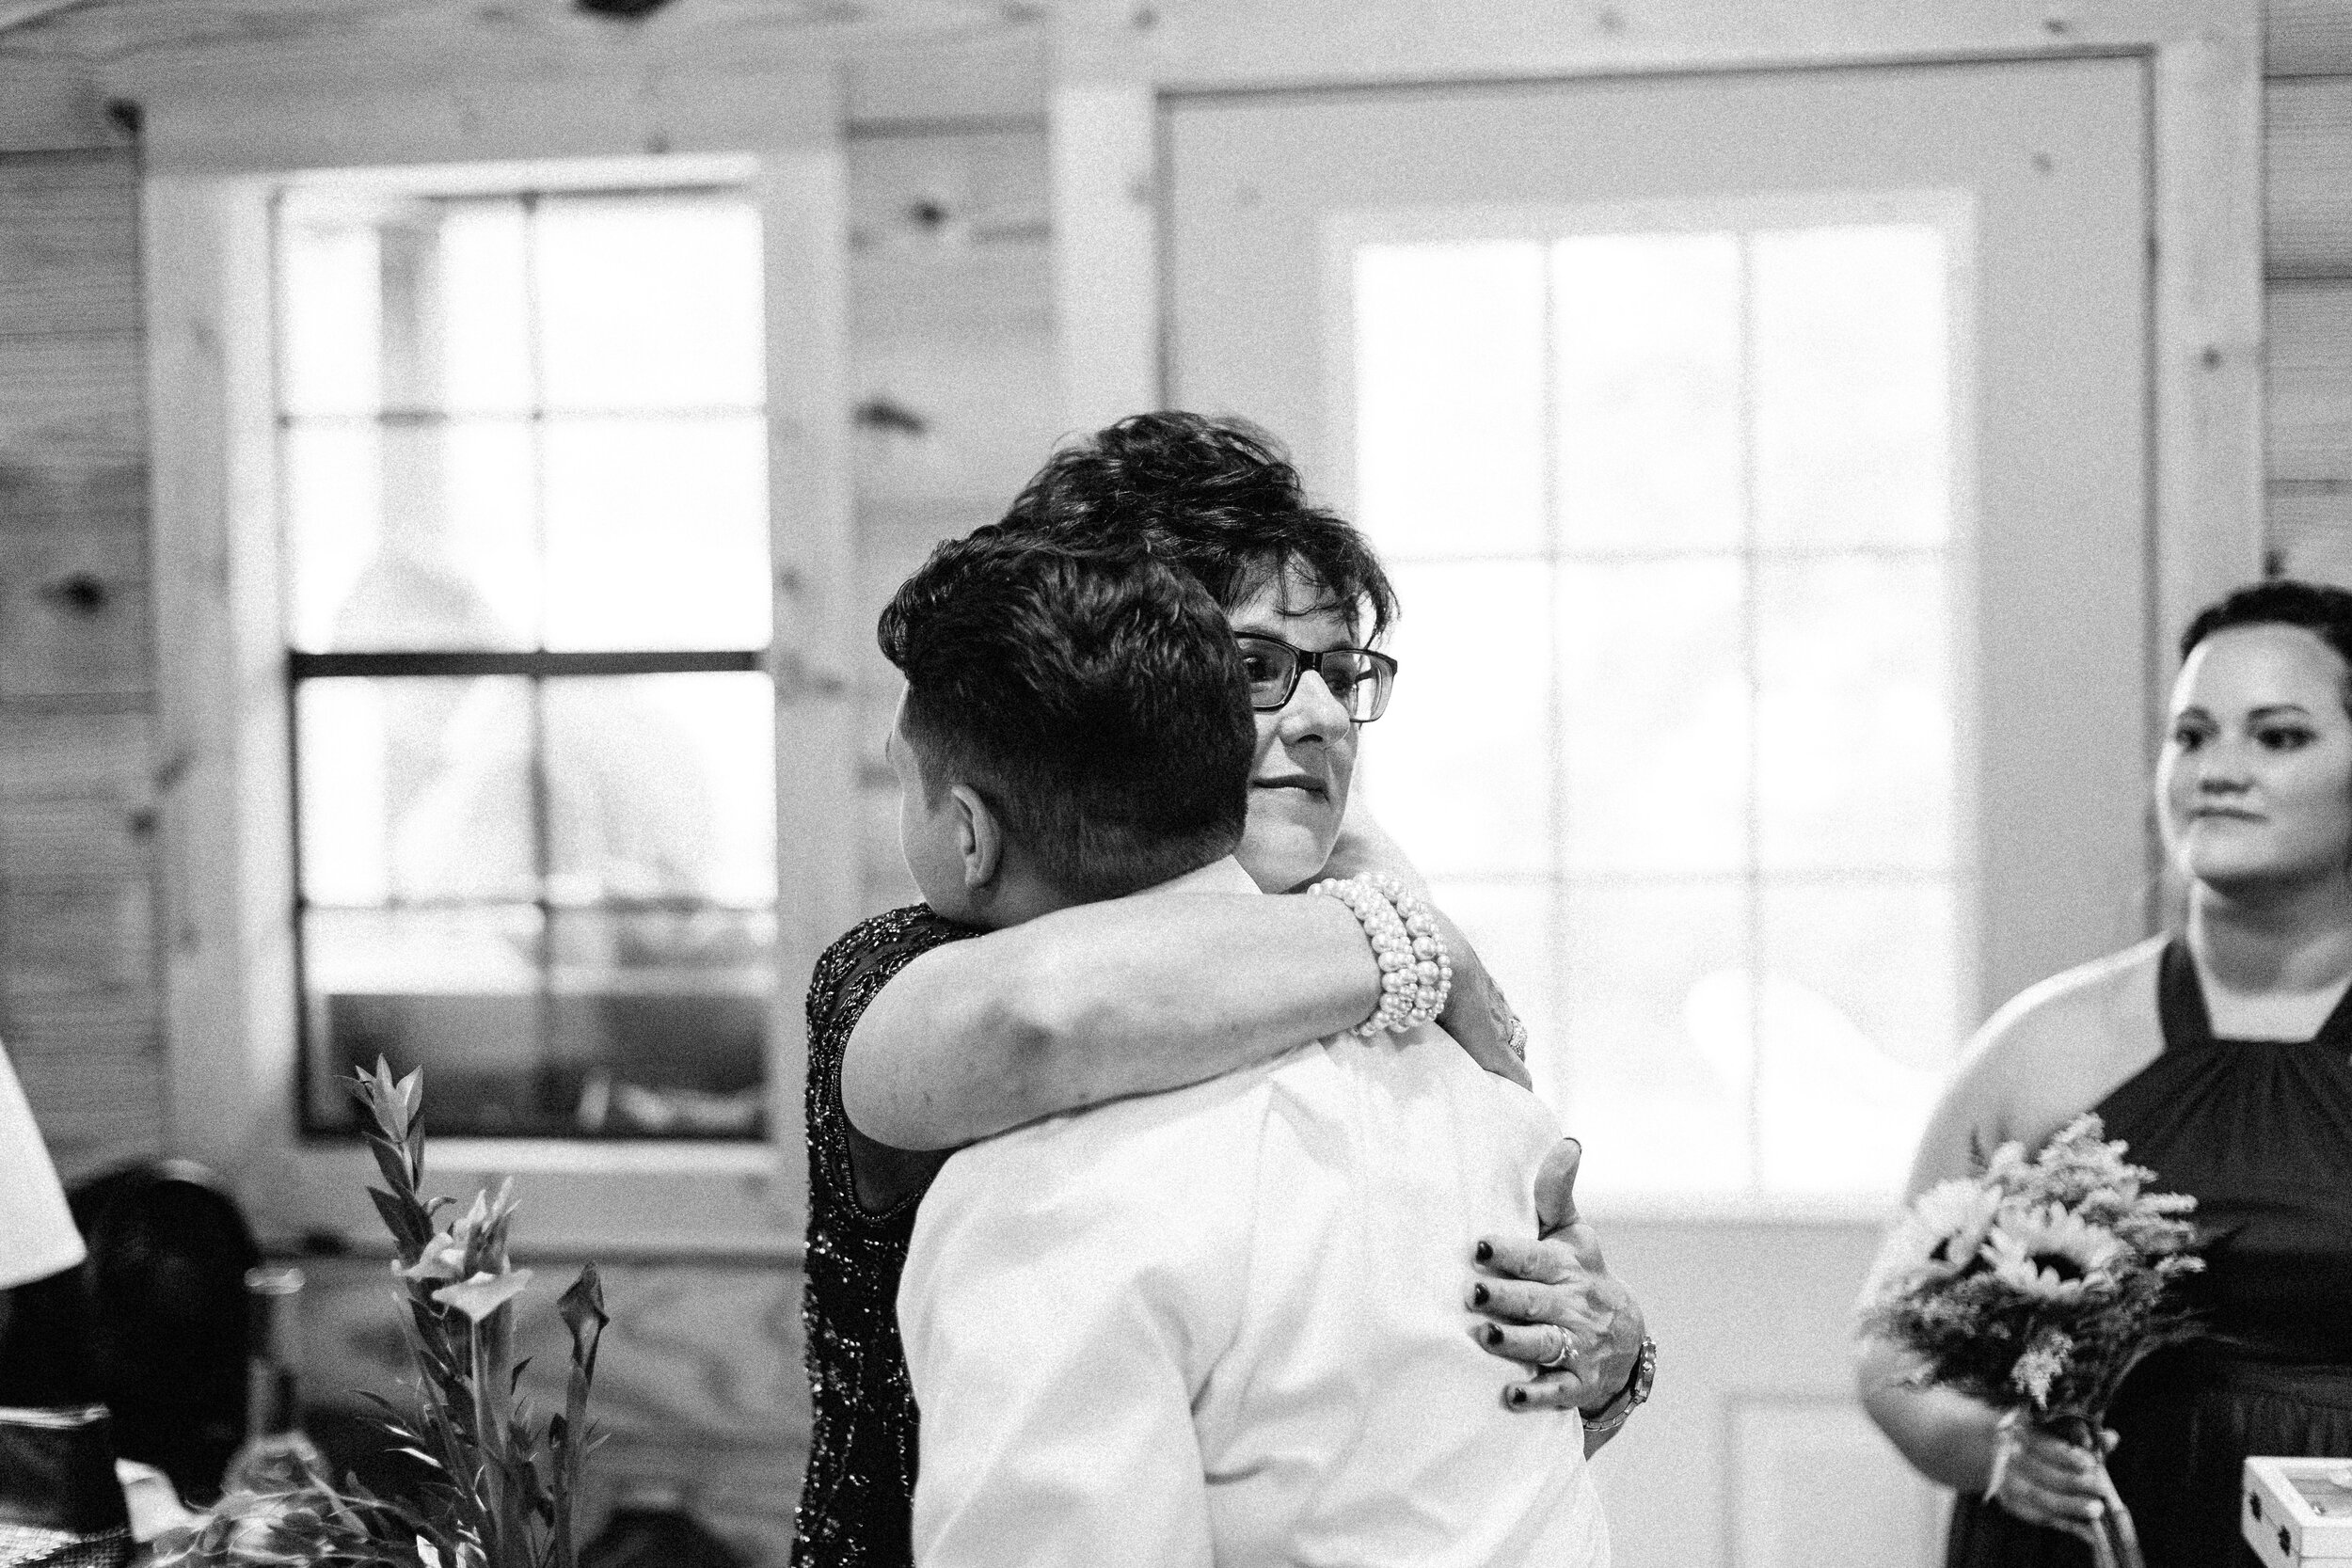 atlanta_wedding_photographers_georgia_same_sex_rustic_barn_farm_lesbian_weddings_inclusive_1267.jpg